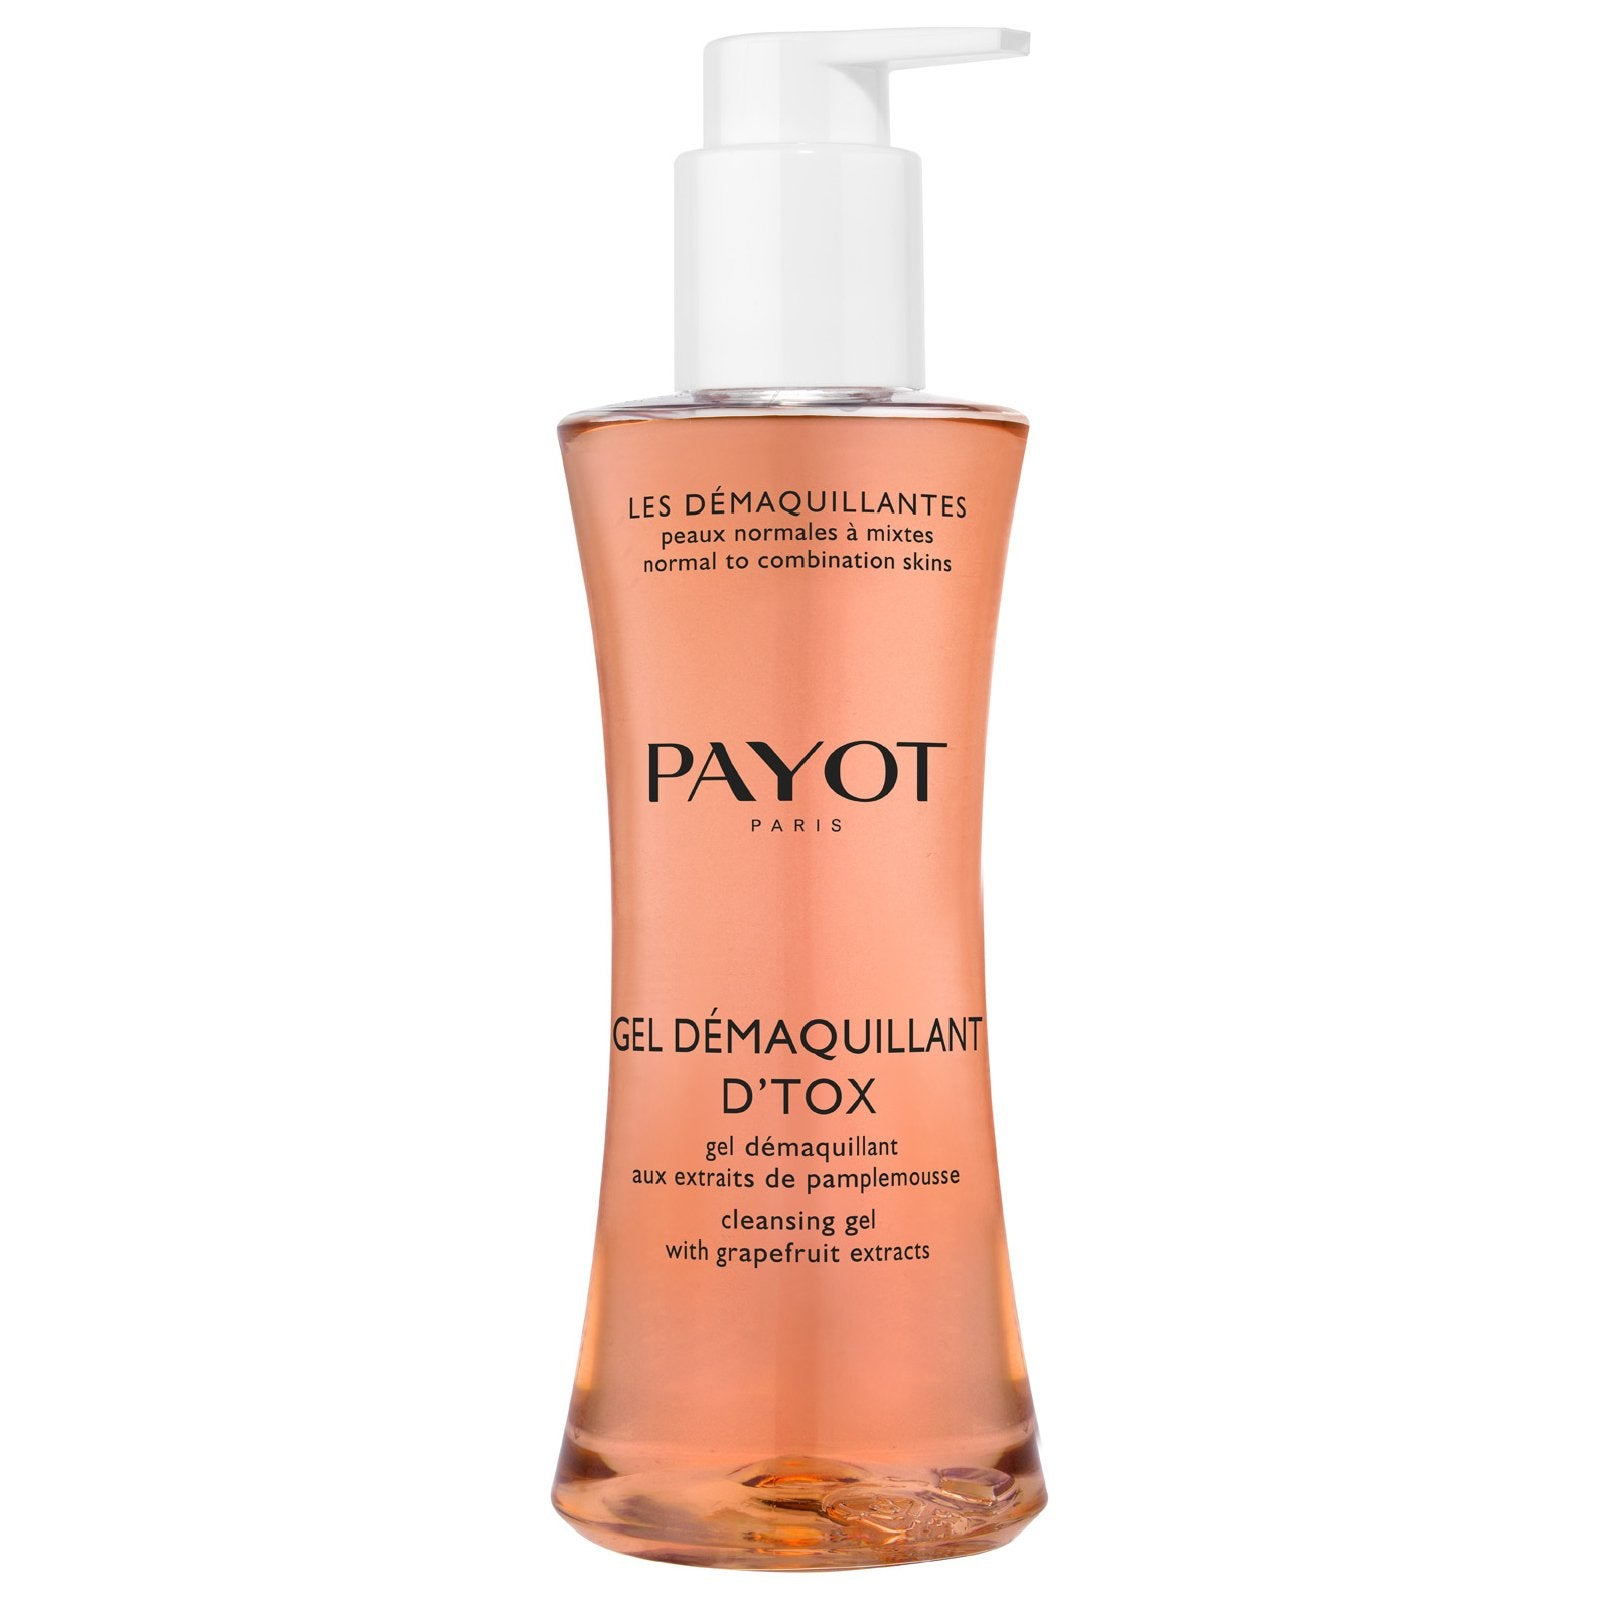 Payot Gel Demaquillant D'Tox Cleansing Gel 200ml product shot